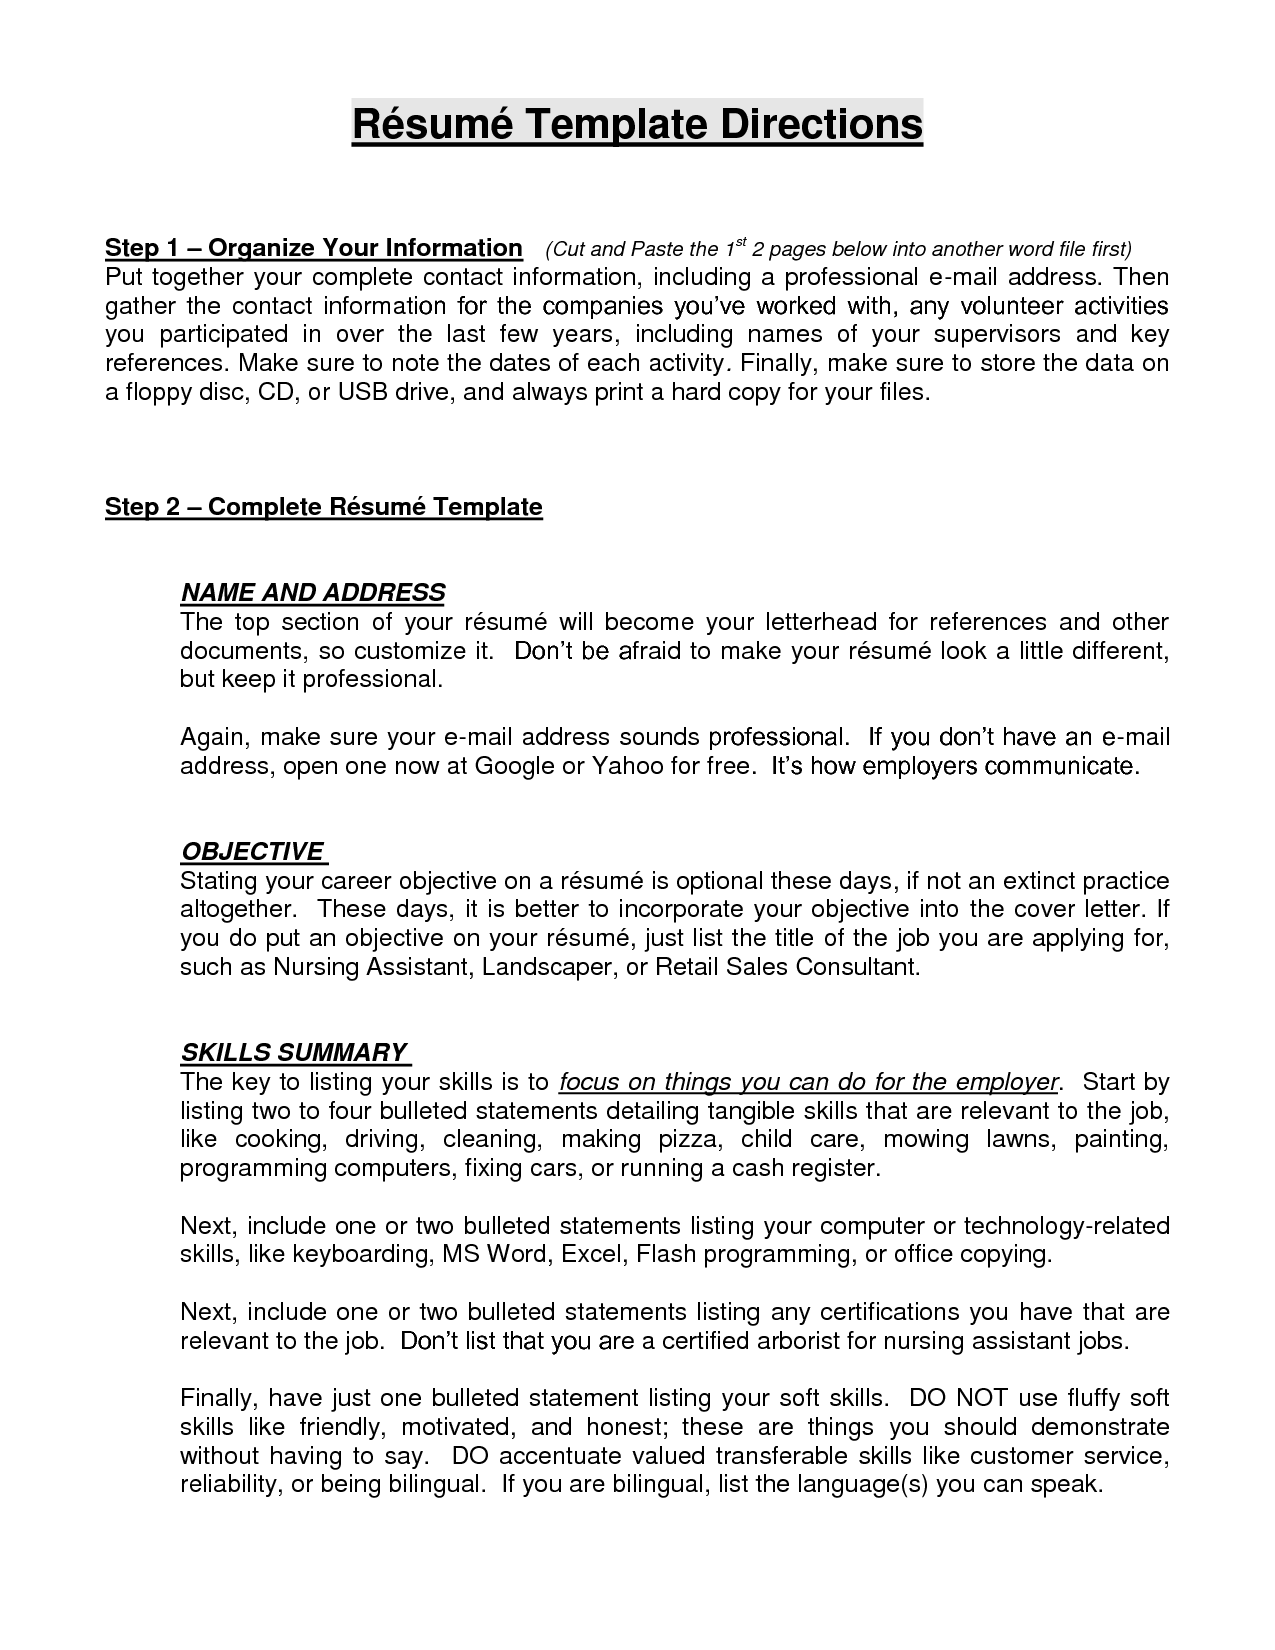 sample resume objective for customer service statement best ideas about examples pinterest effective. Resume Example. Resume CV Cover Letter